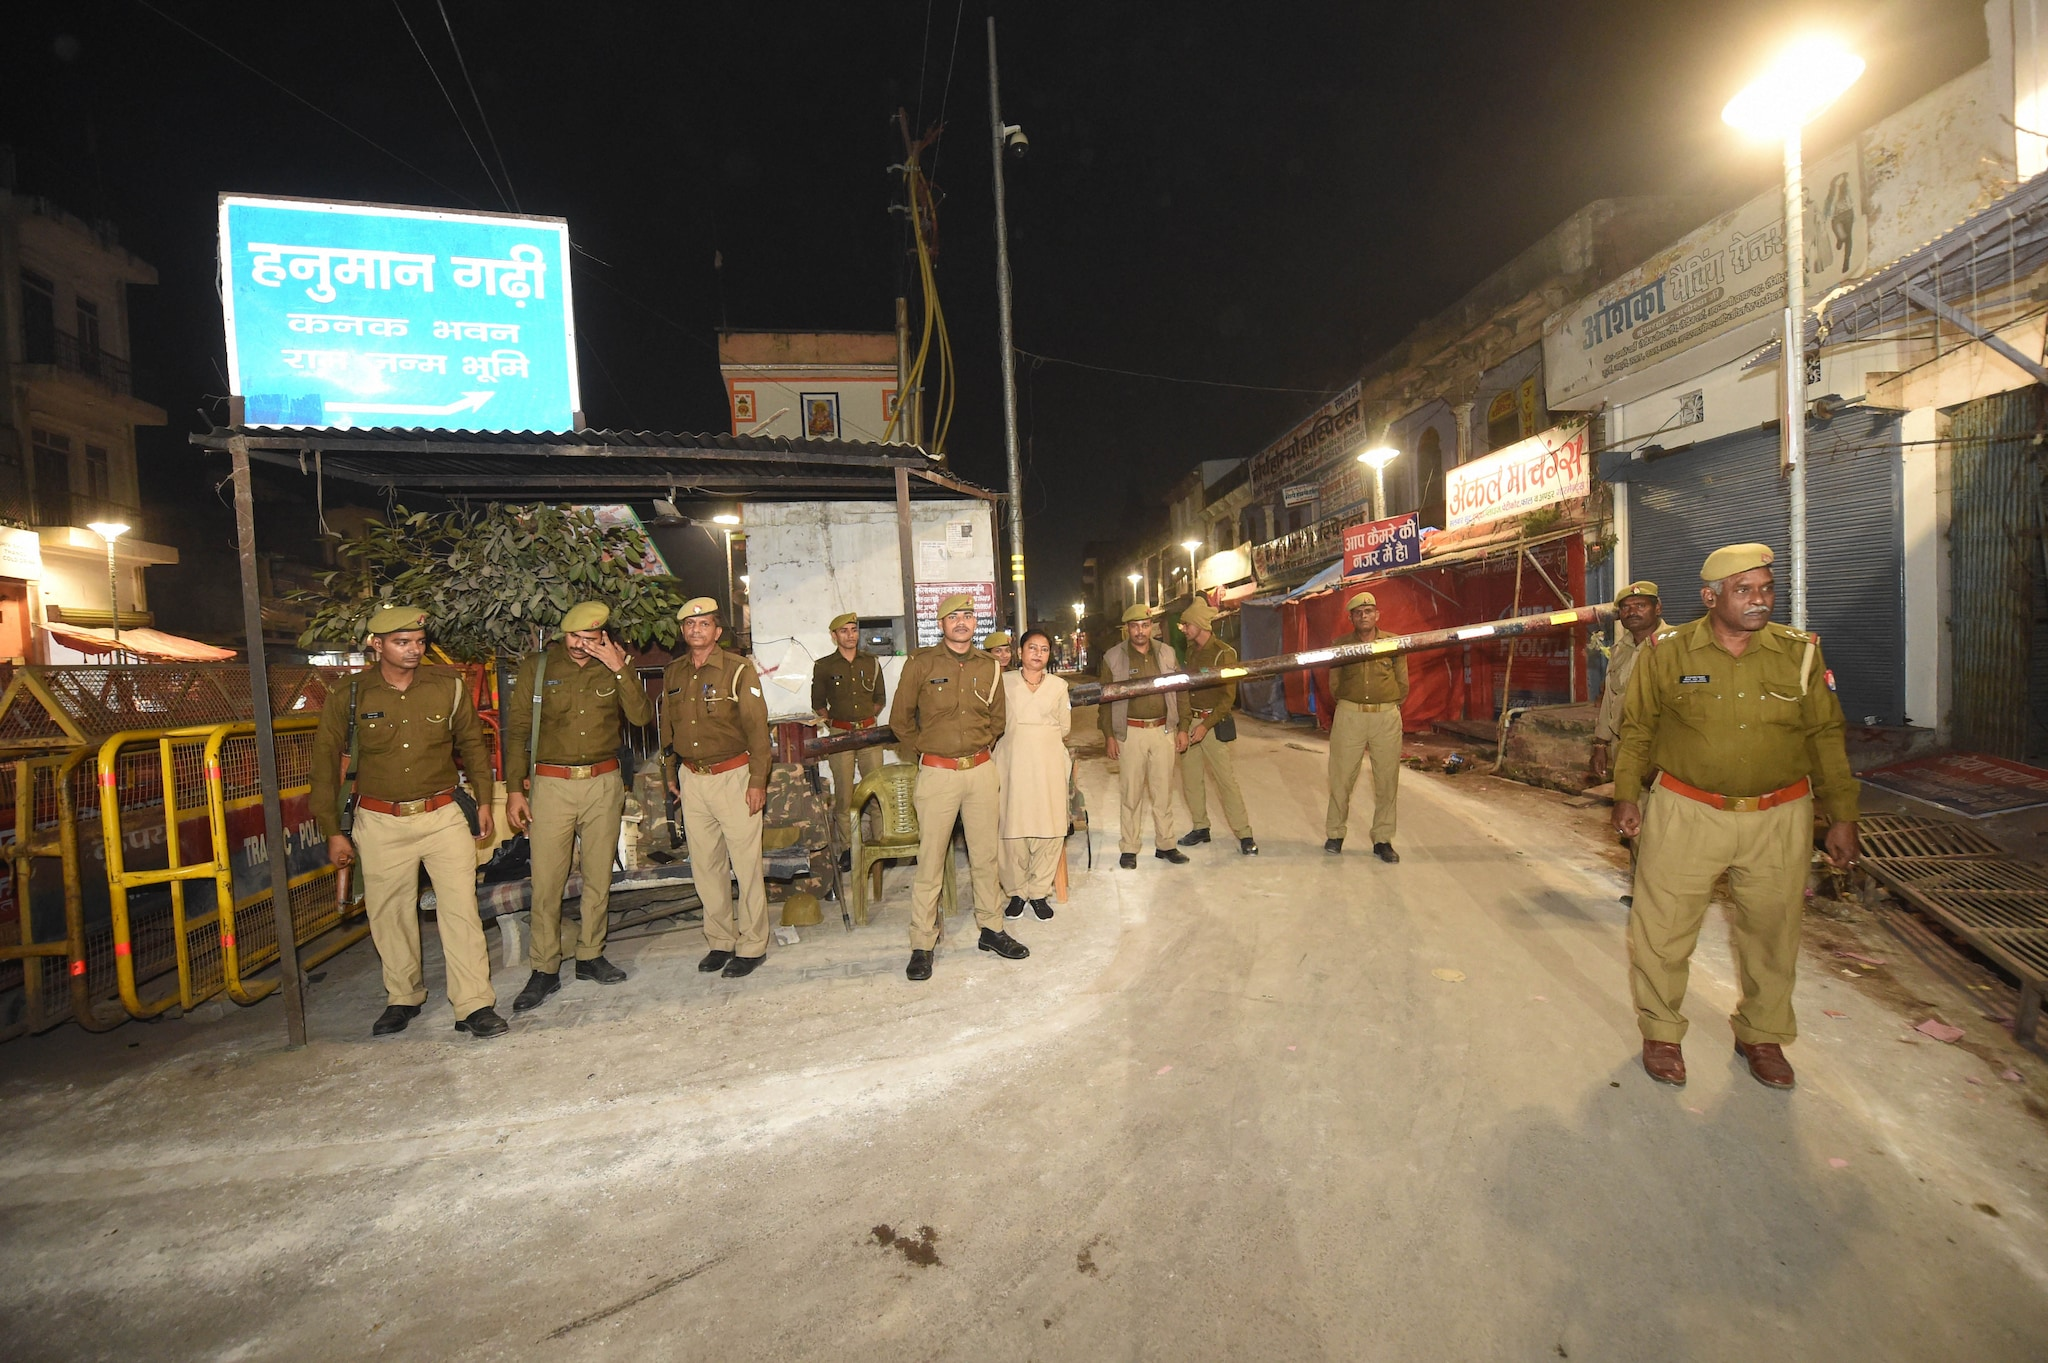 Police personnel near the site of disputed Ram Janambhoomi-Babri Masjid site, in Ayodhya, Friday, Nov. 8, 2019. (PTI Photo)